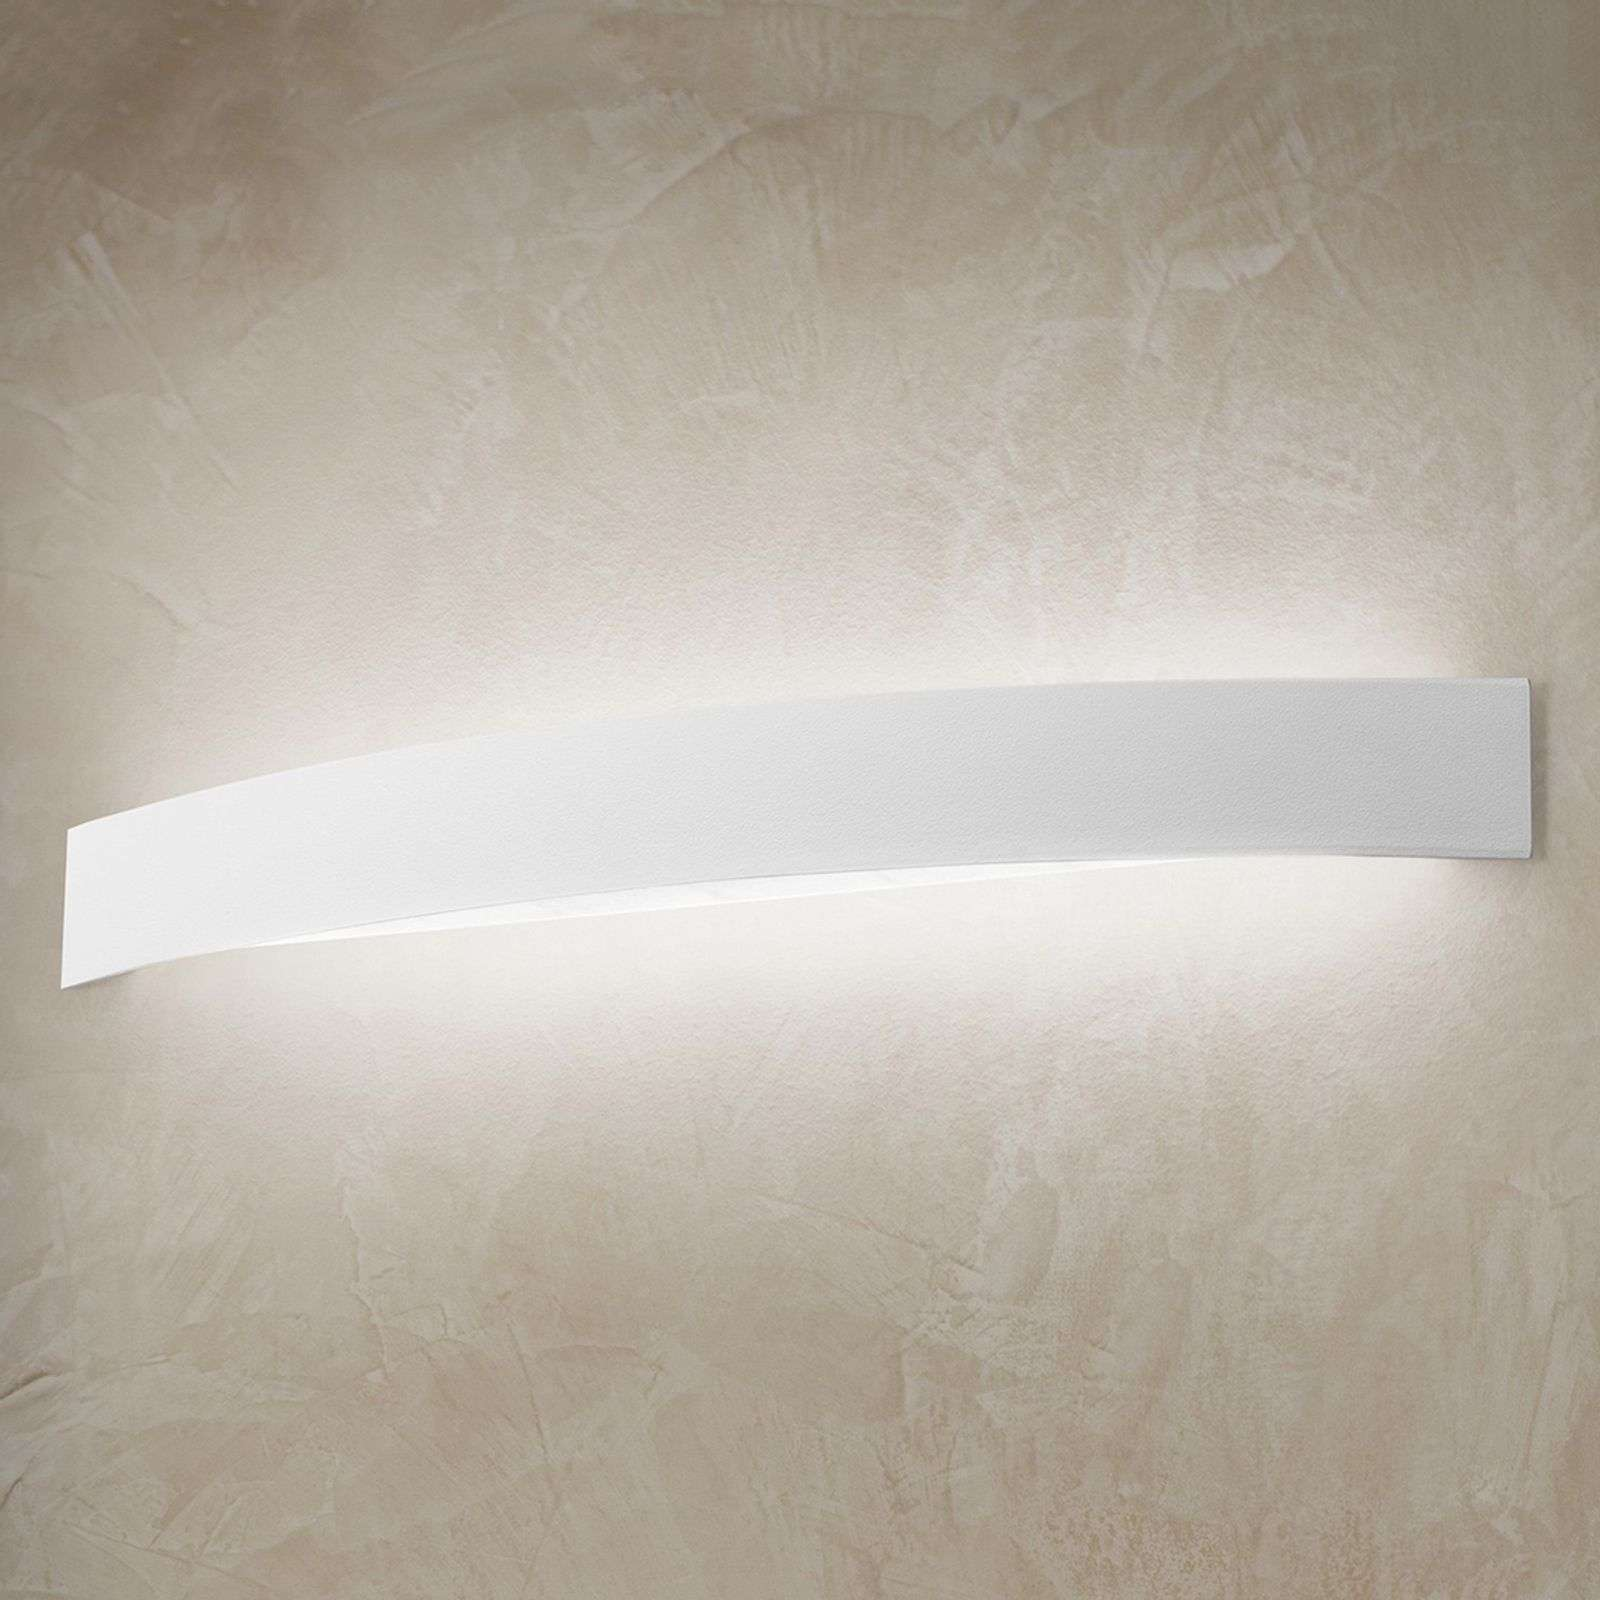 Gebogen LED wandlamp Curve in wit